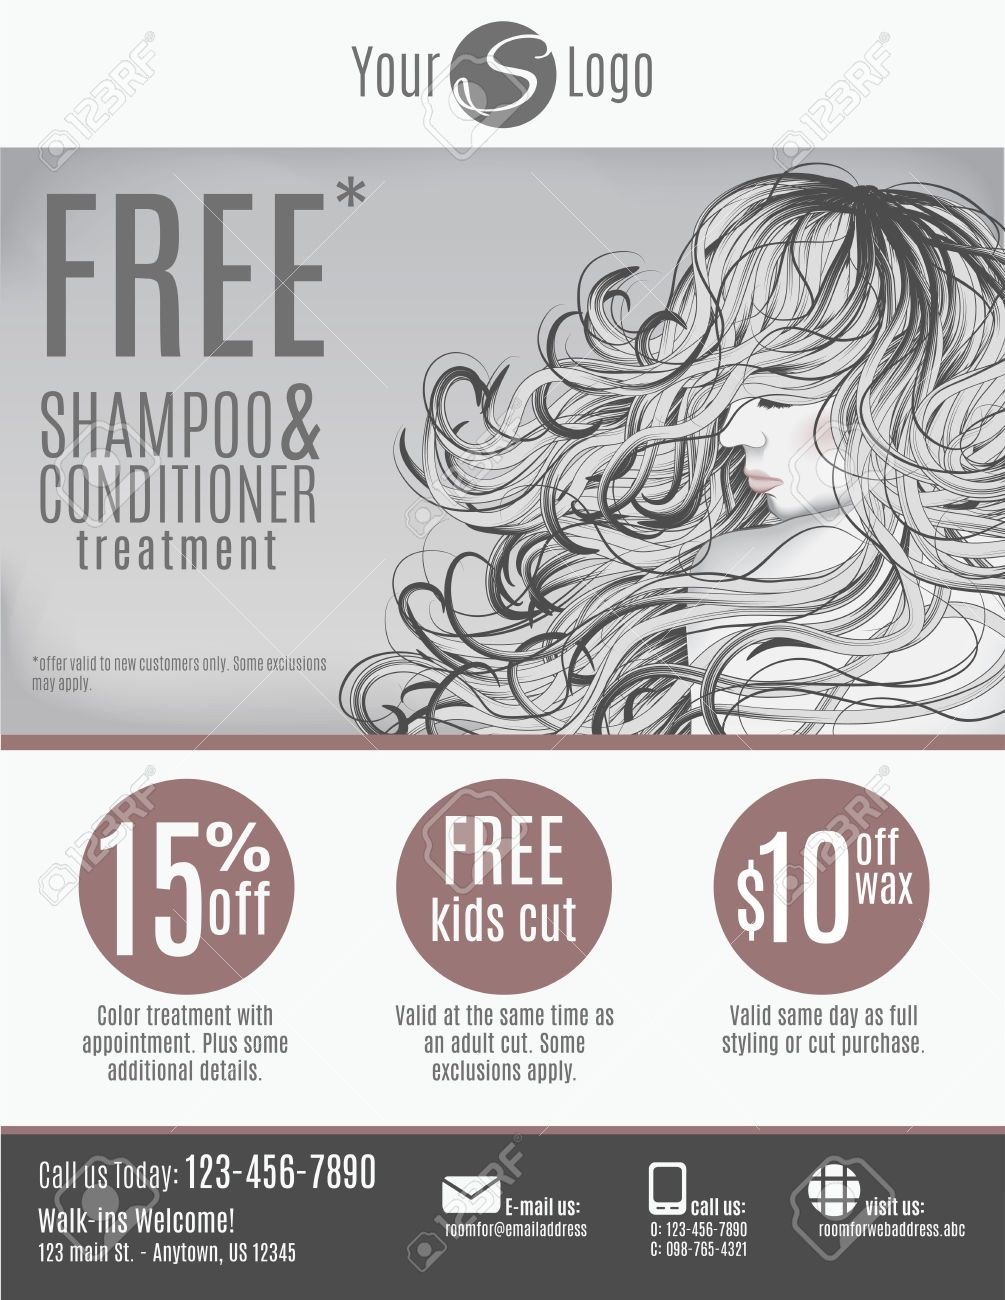 hair salon advertising flyers google search salon idea s hair salon advertising flyers google search